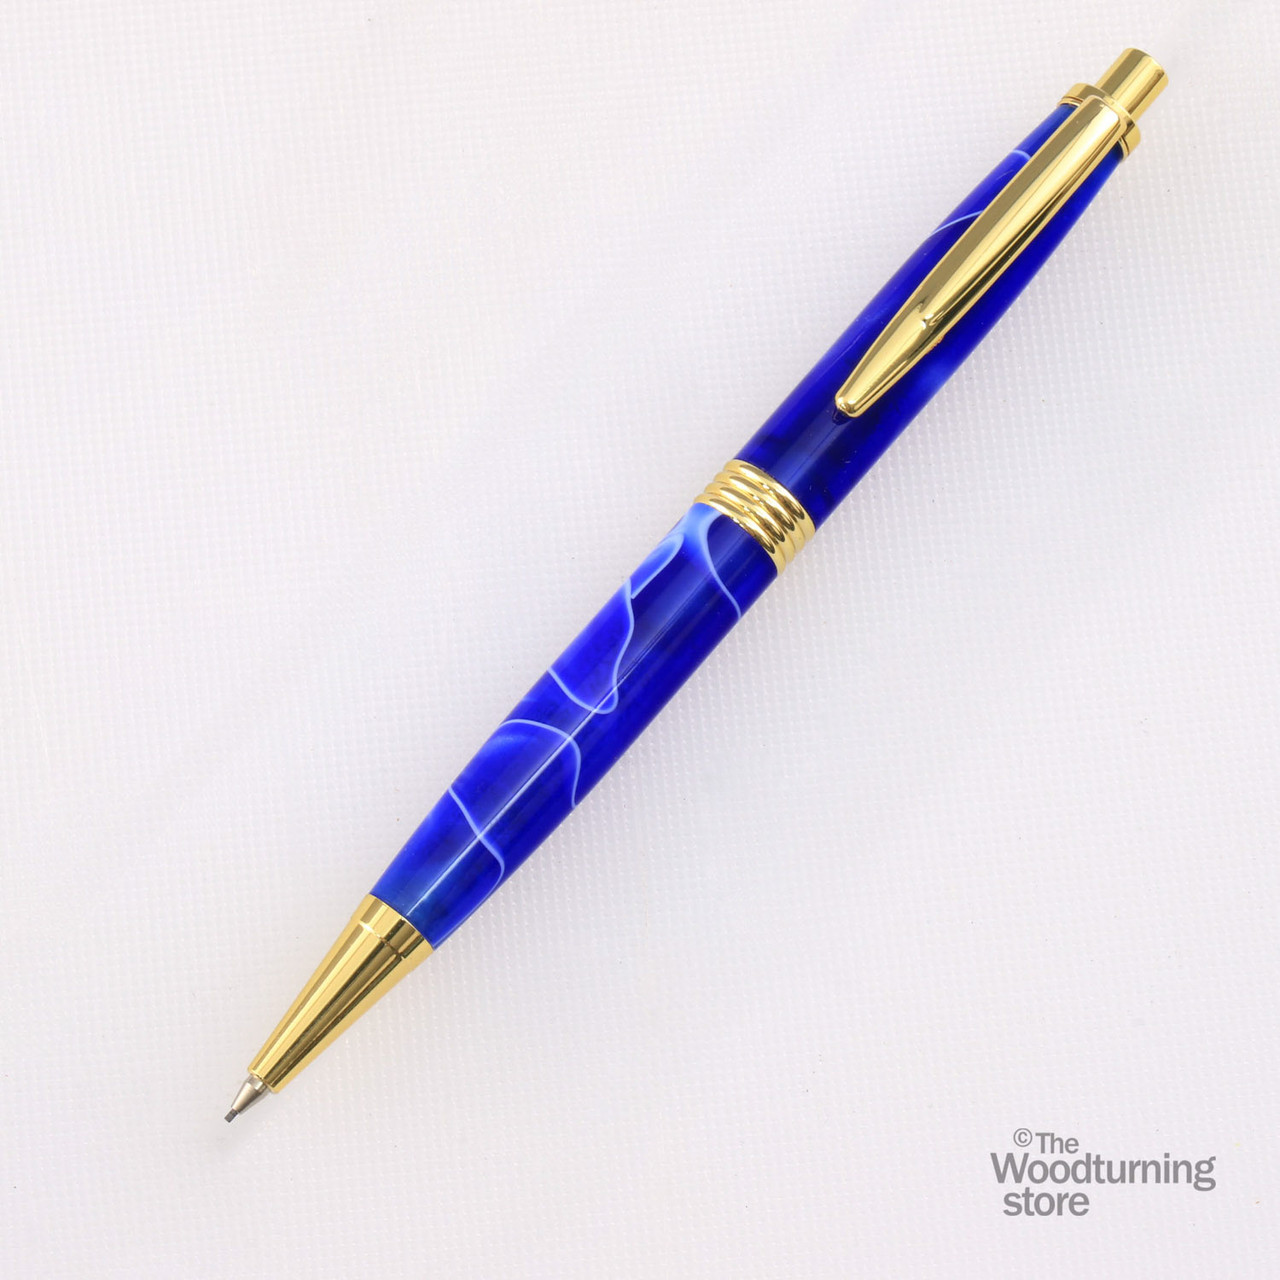 https://d3d71ba2asa5oz.cloudfront.net/12004185/images/legacy_streamline_pencil_gold__12.jpg